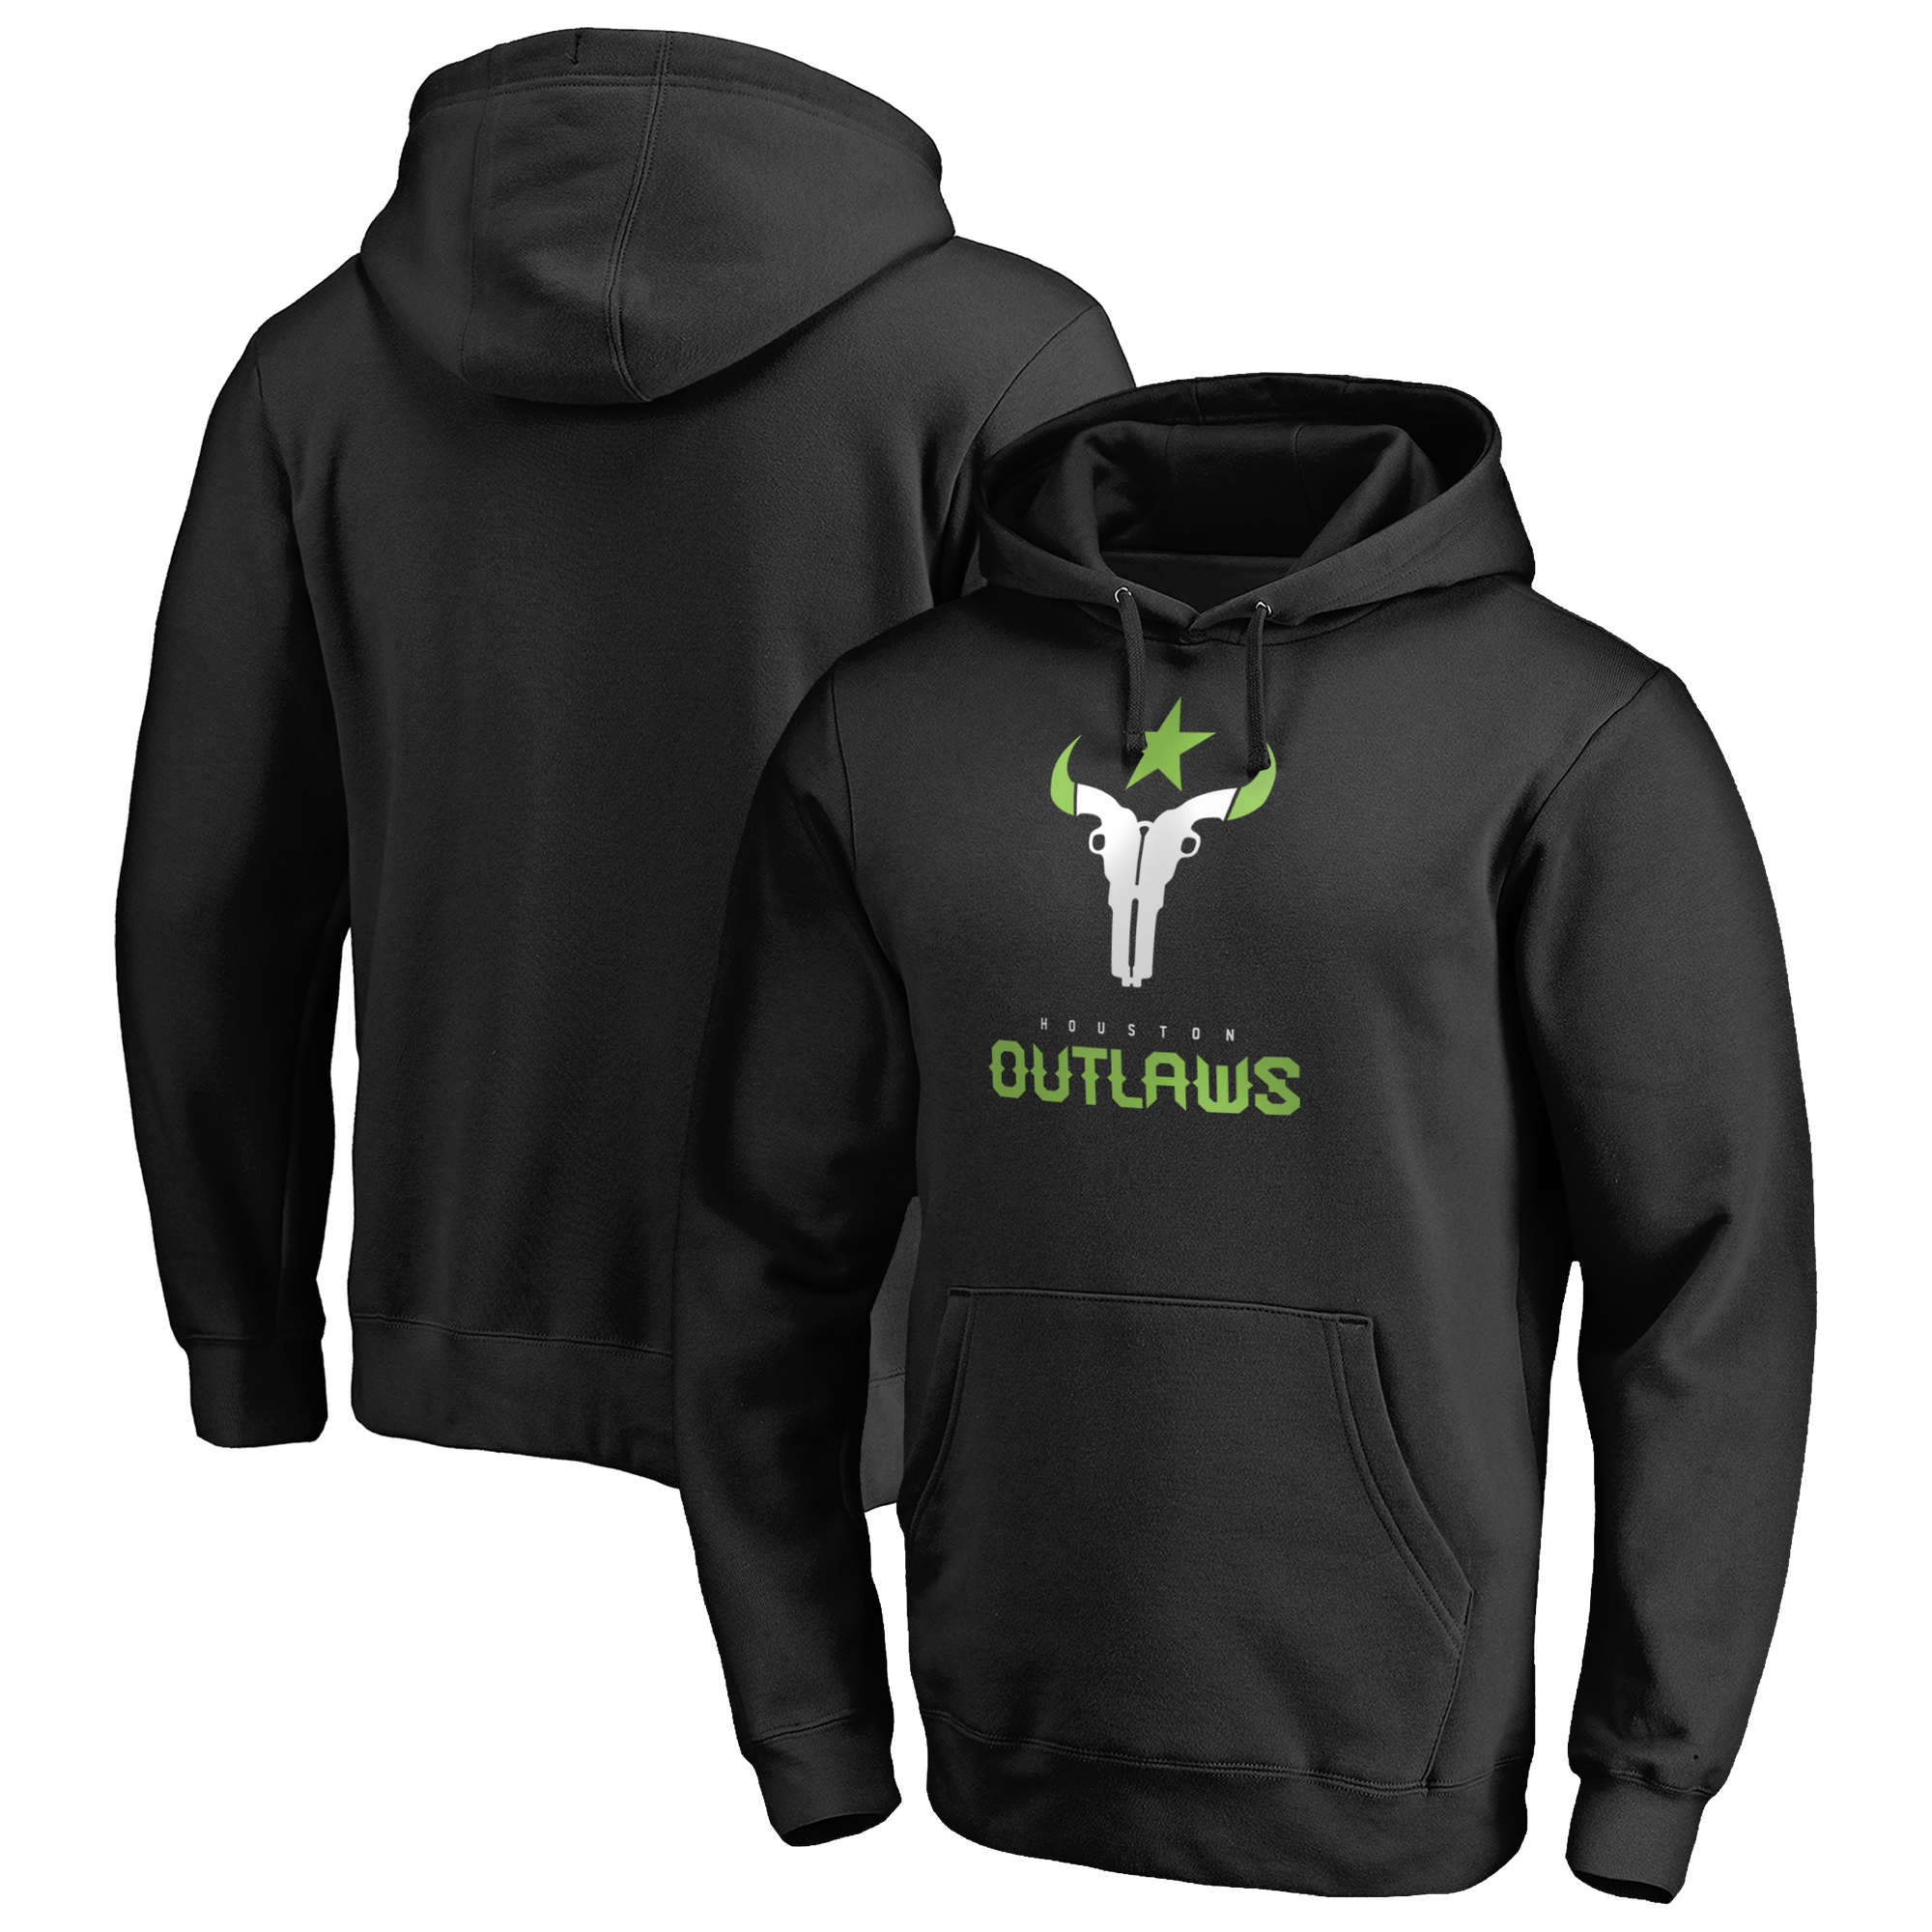 Houston Outlaws Fanatics Branded Team Identity Pullover Hoodie - Black